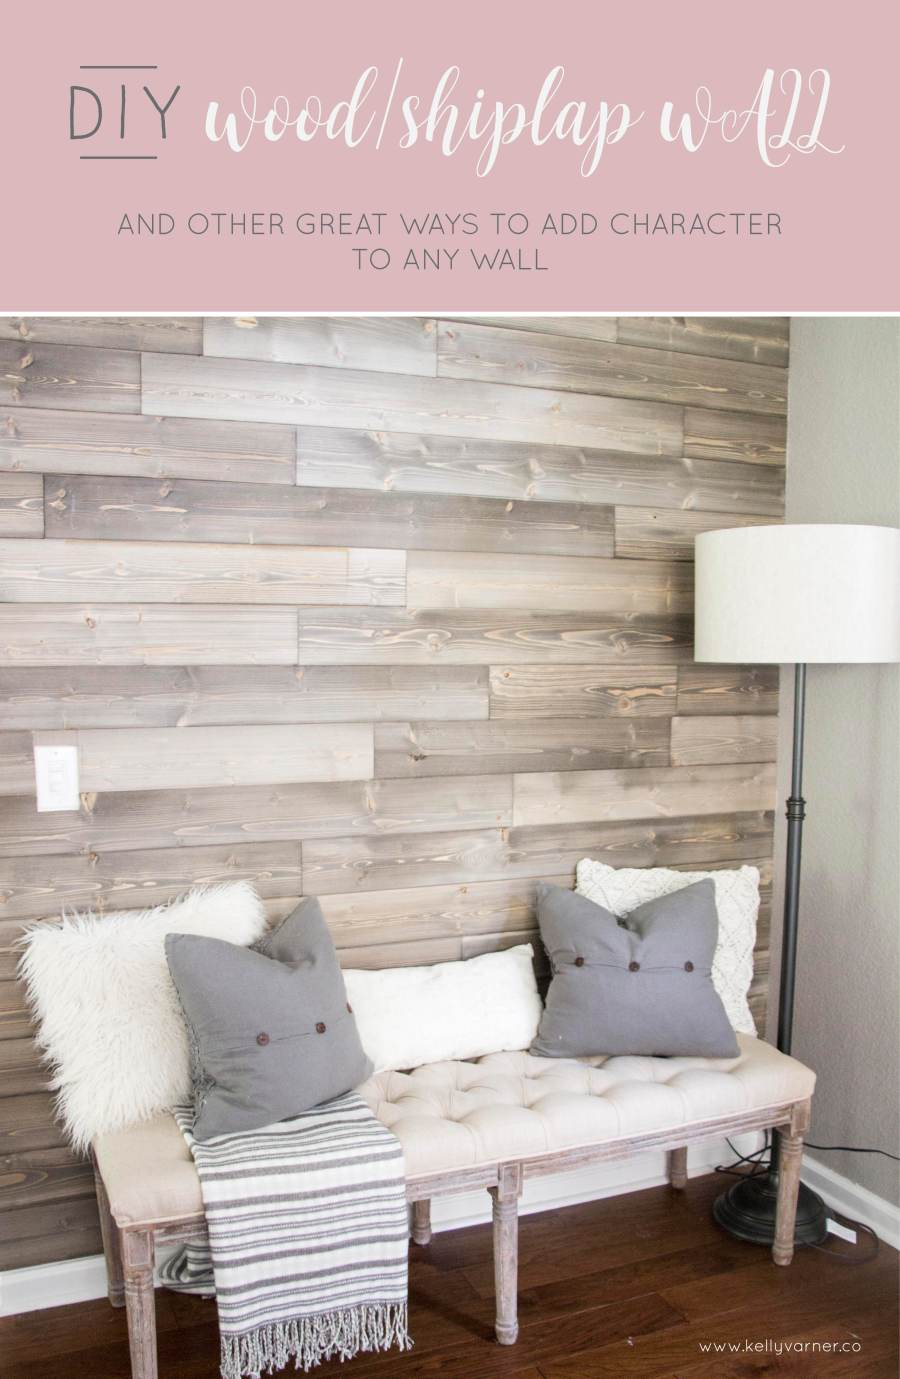 DiY wood wall